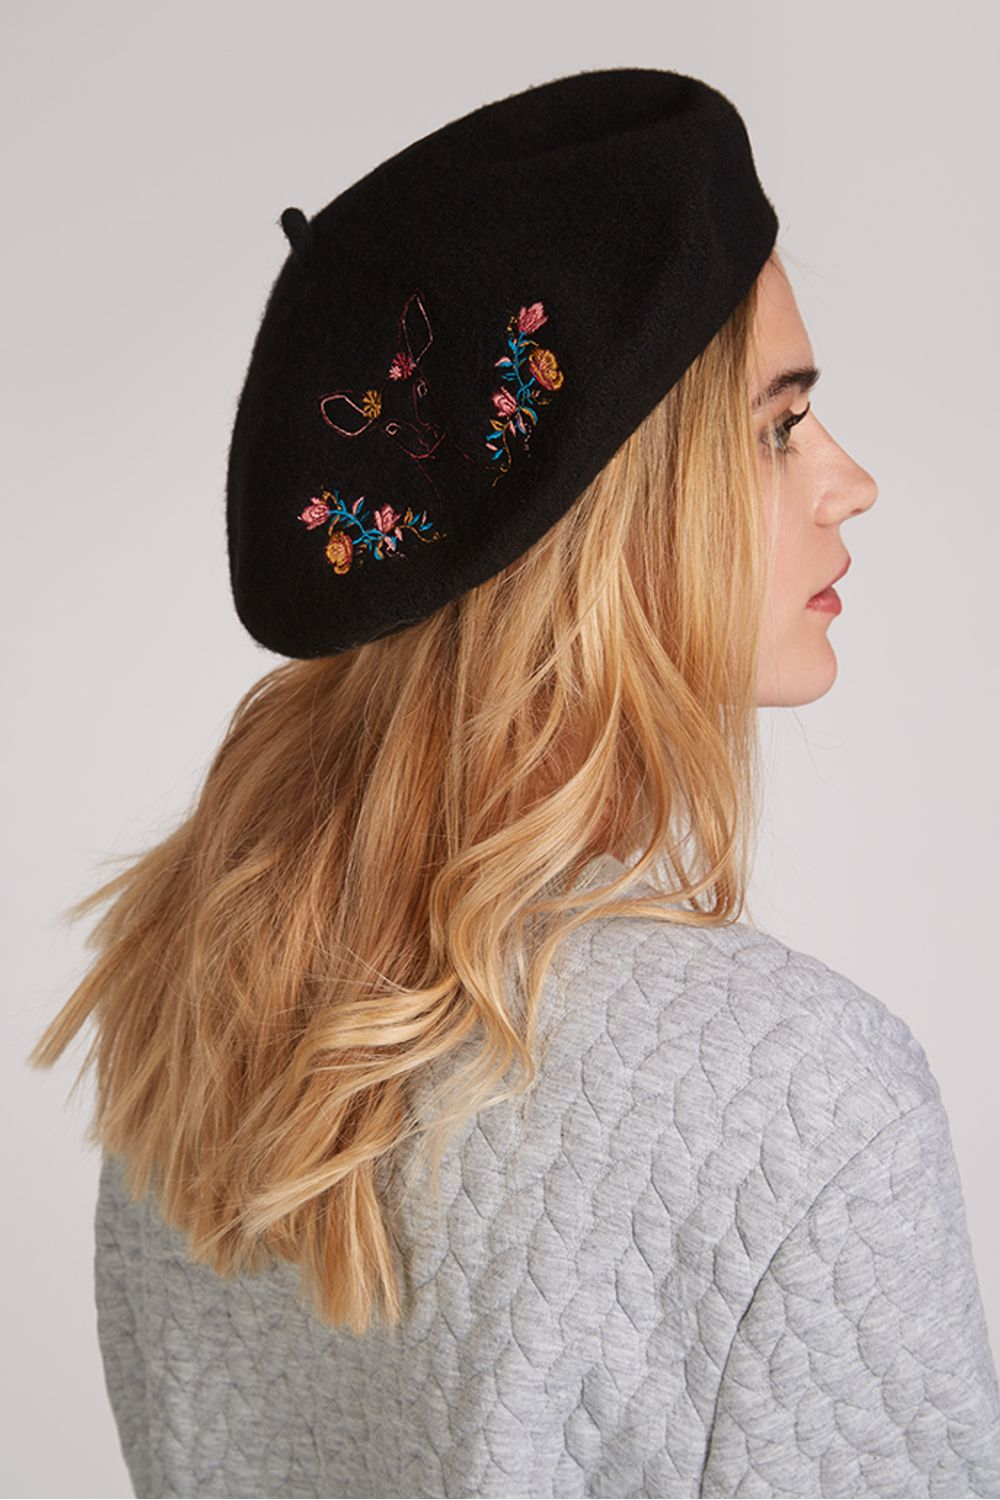 Louche Remi Deer Embroidered Beret Black Wool